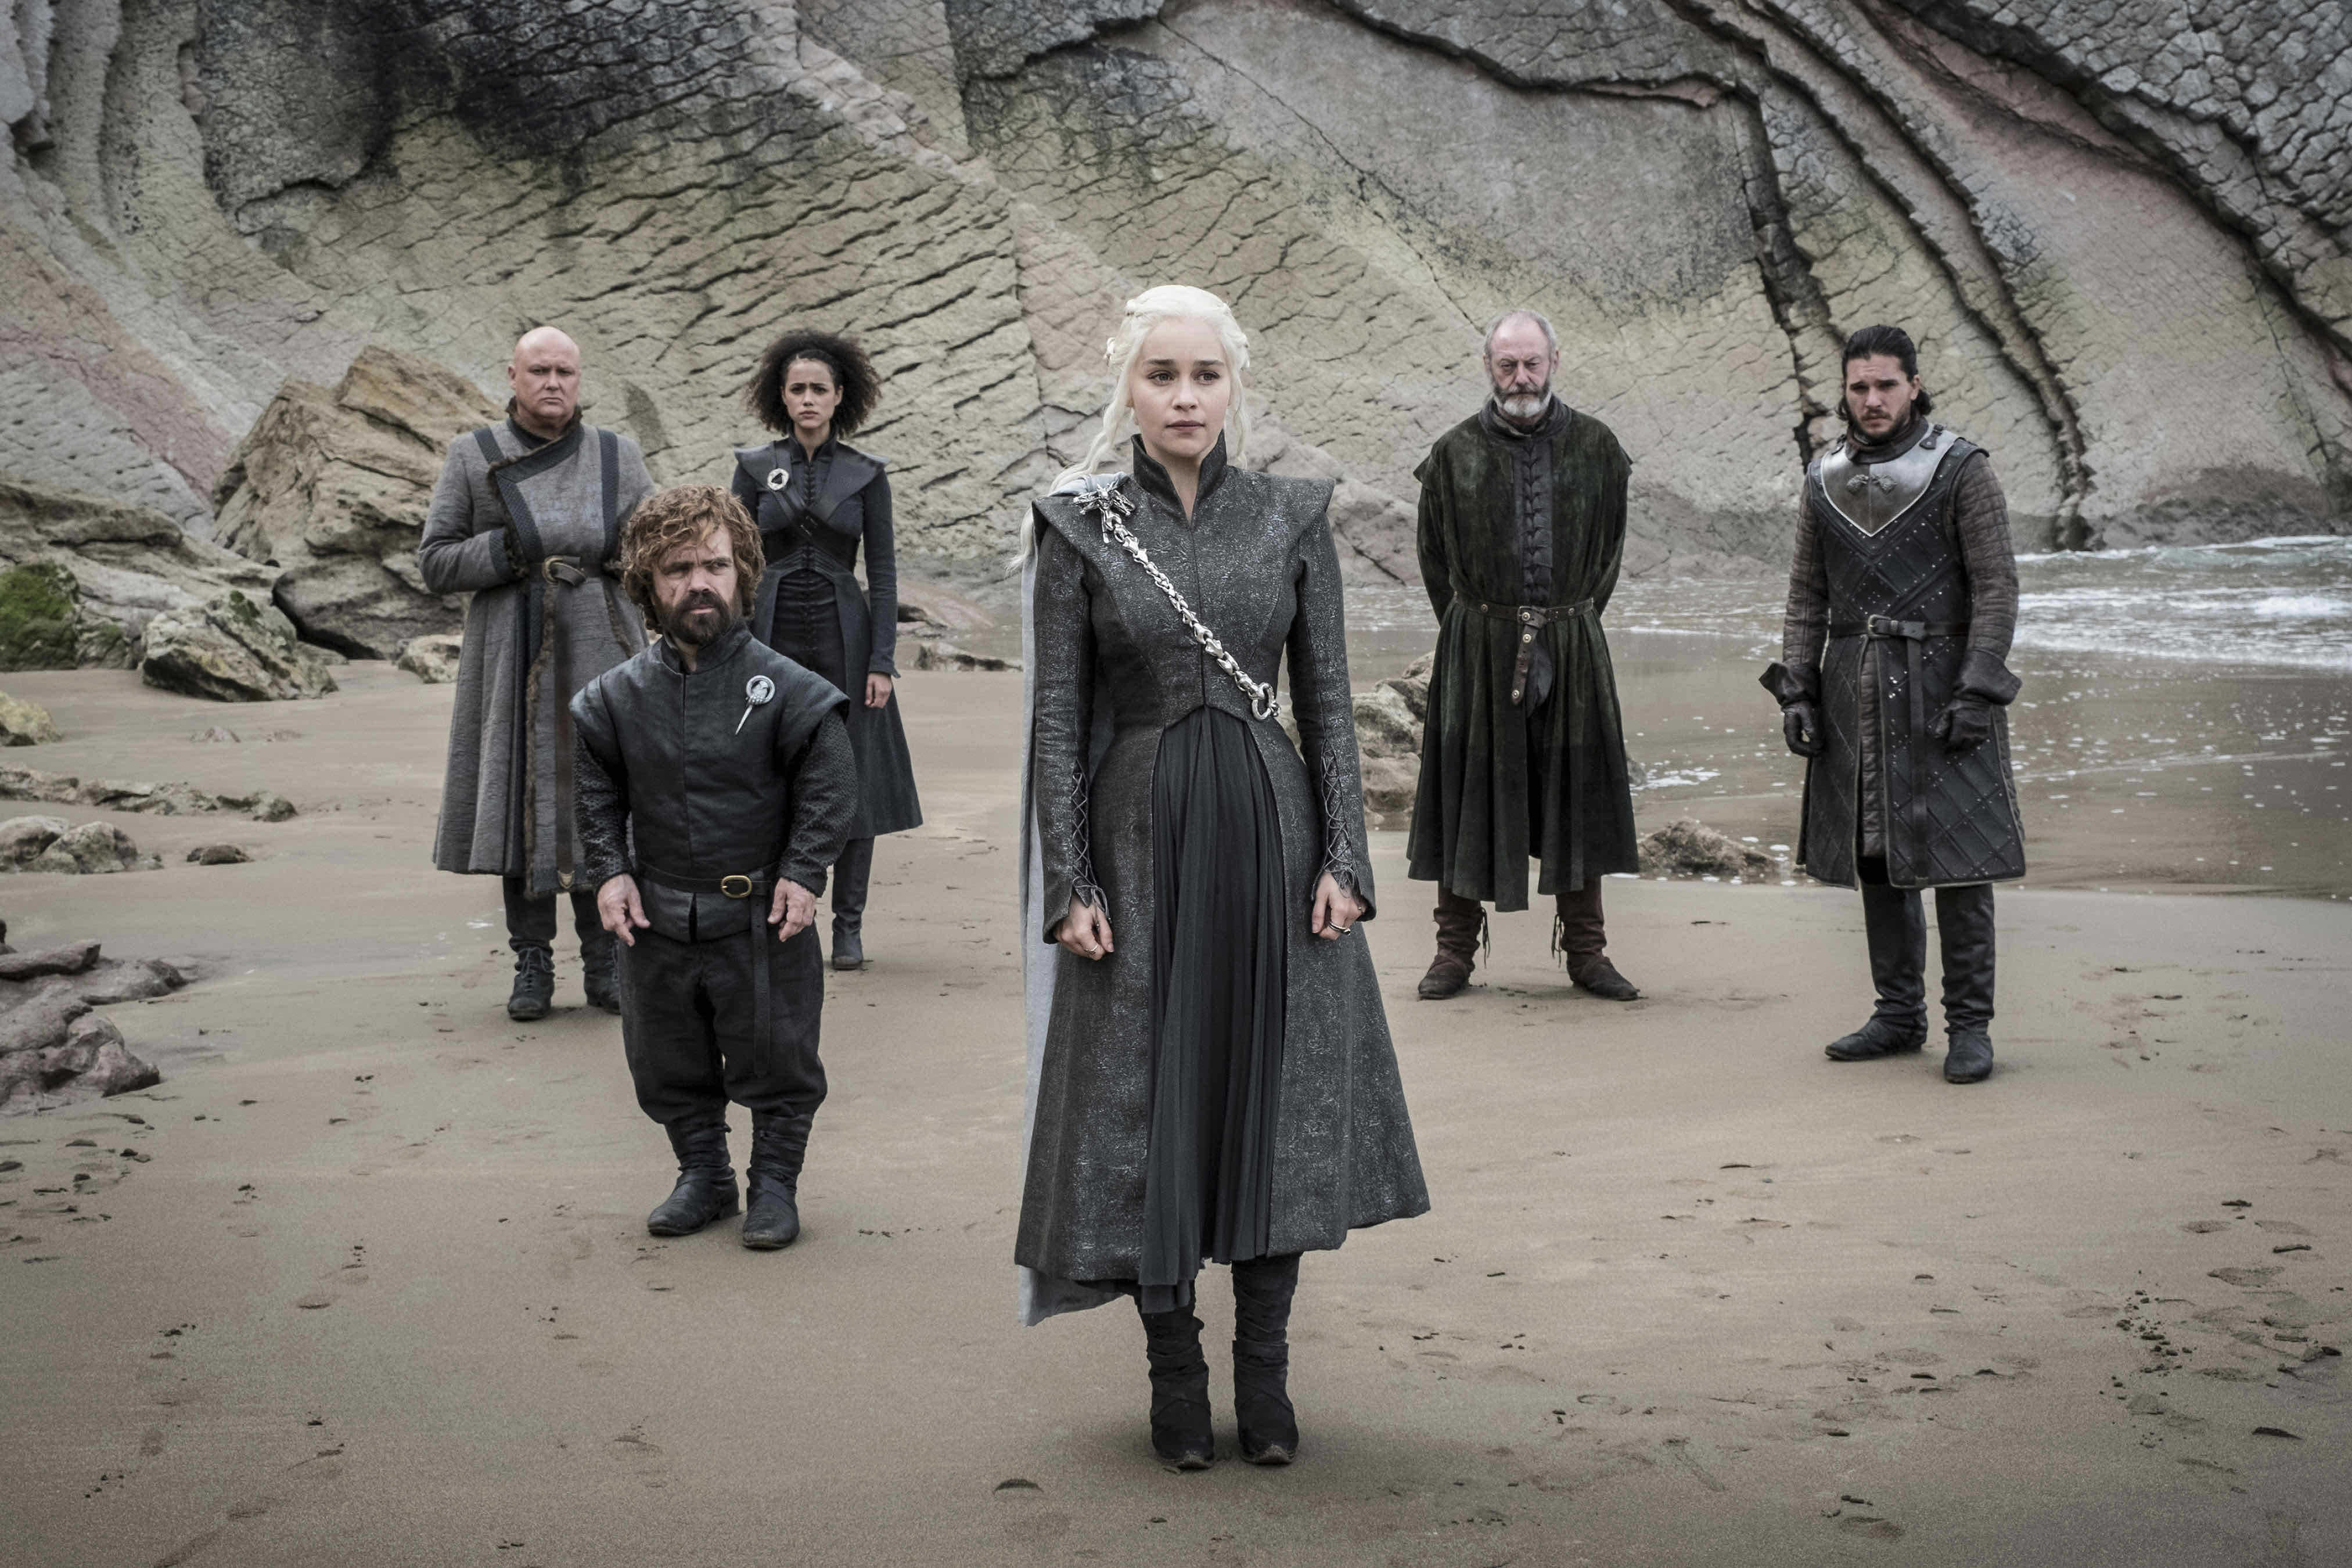 Game of Thrones characters standing on a beach.